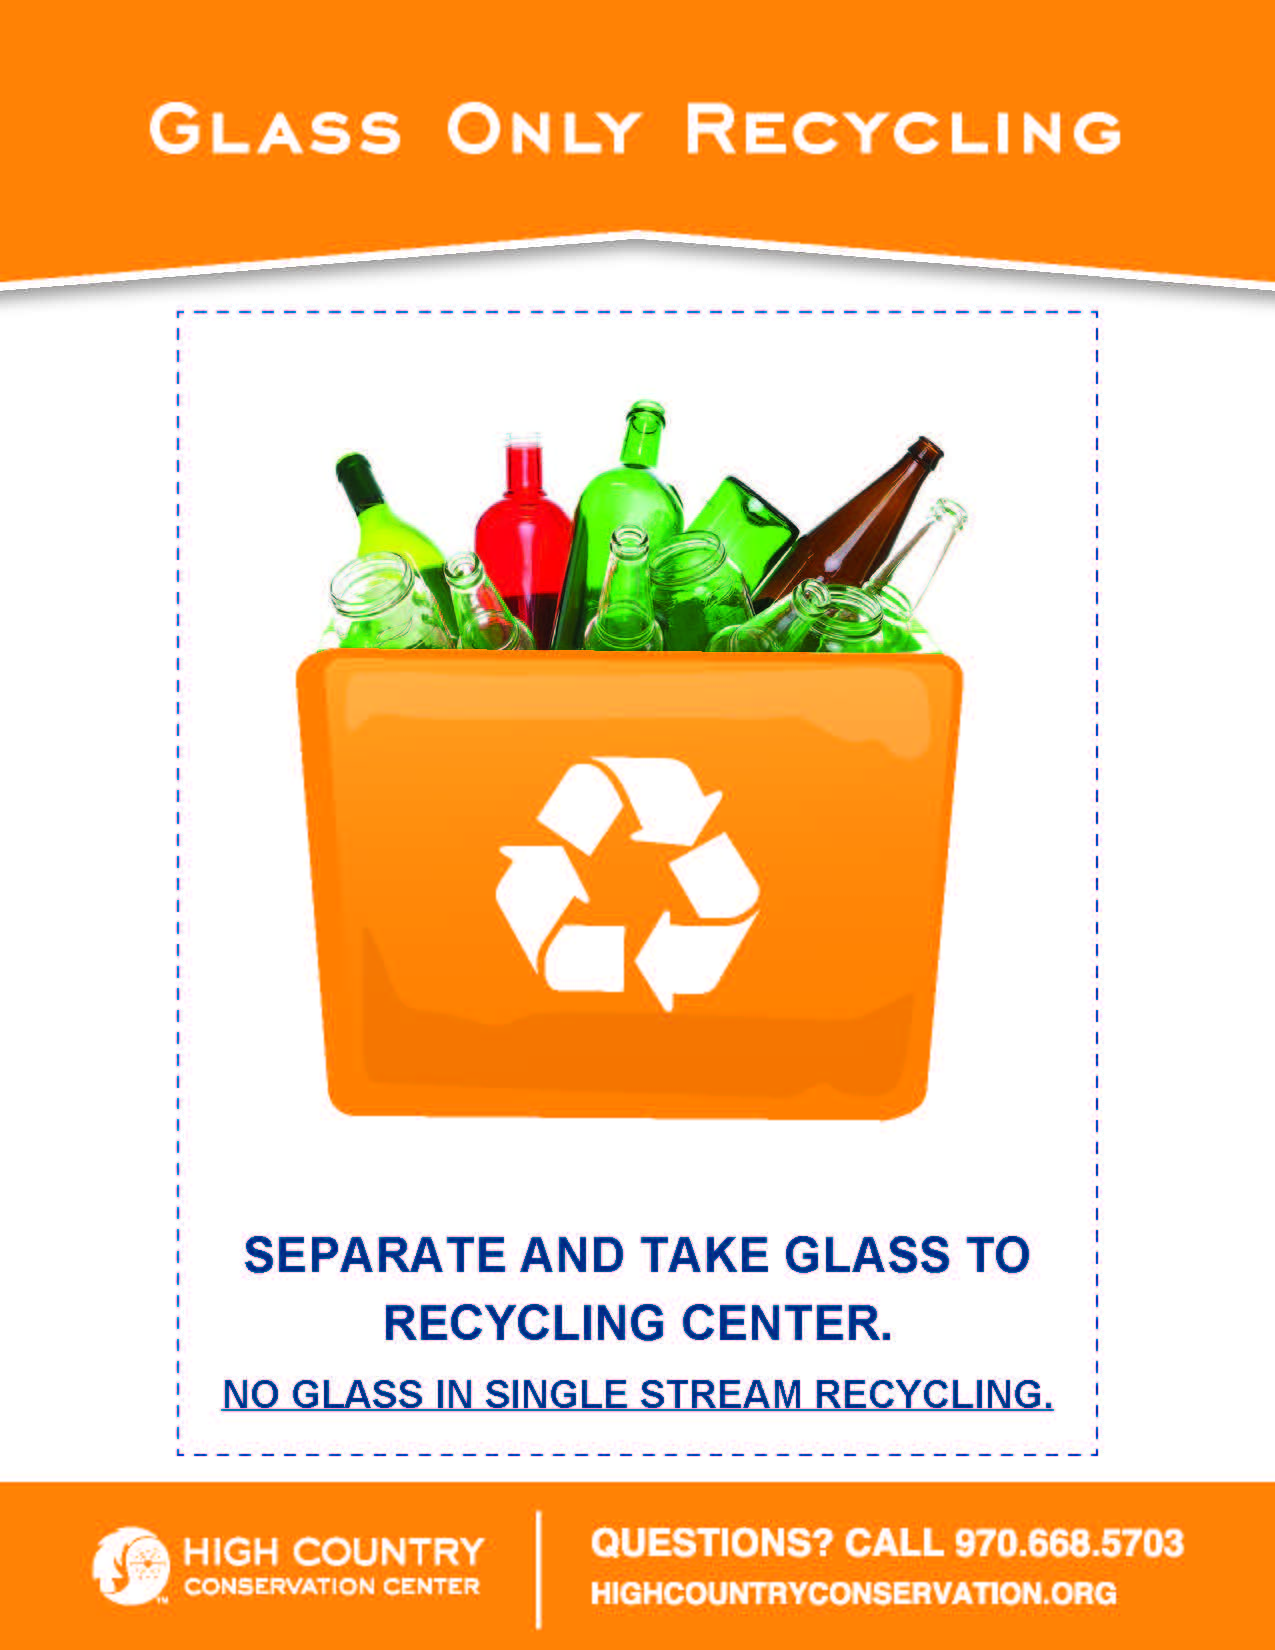 Information describing glass recycling